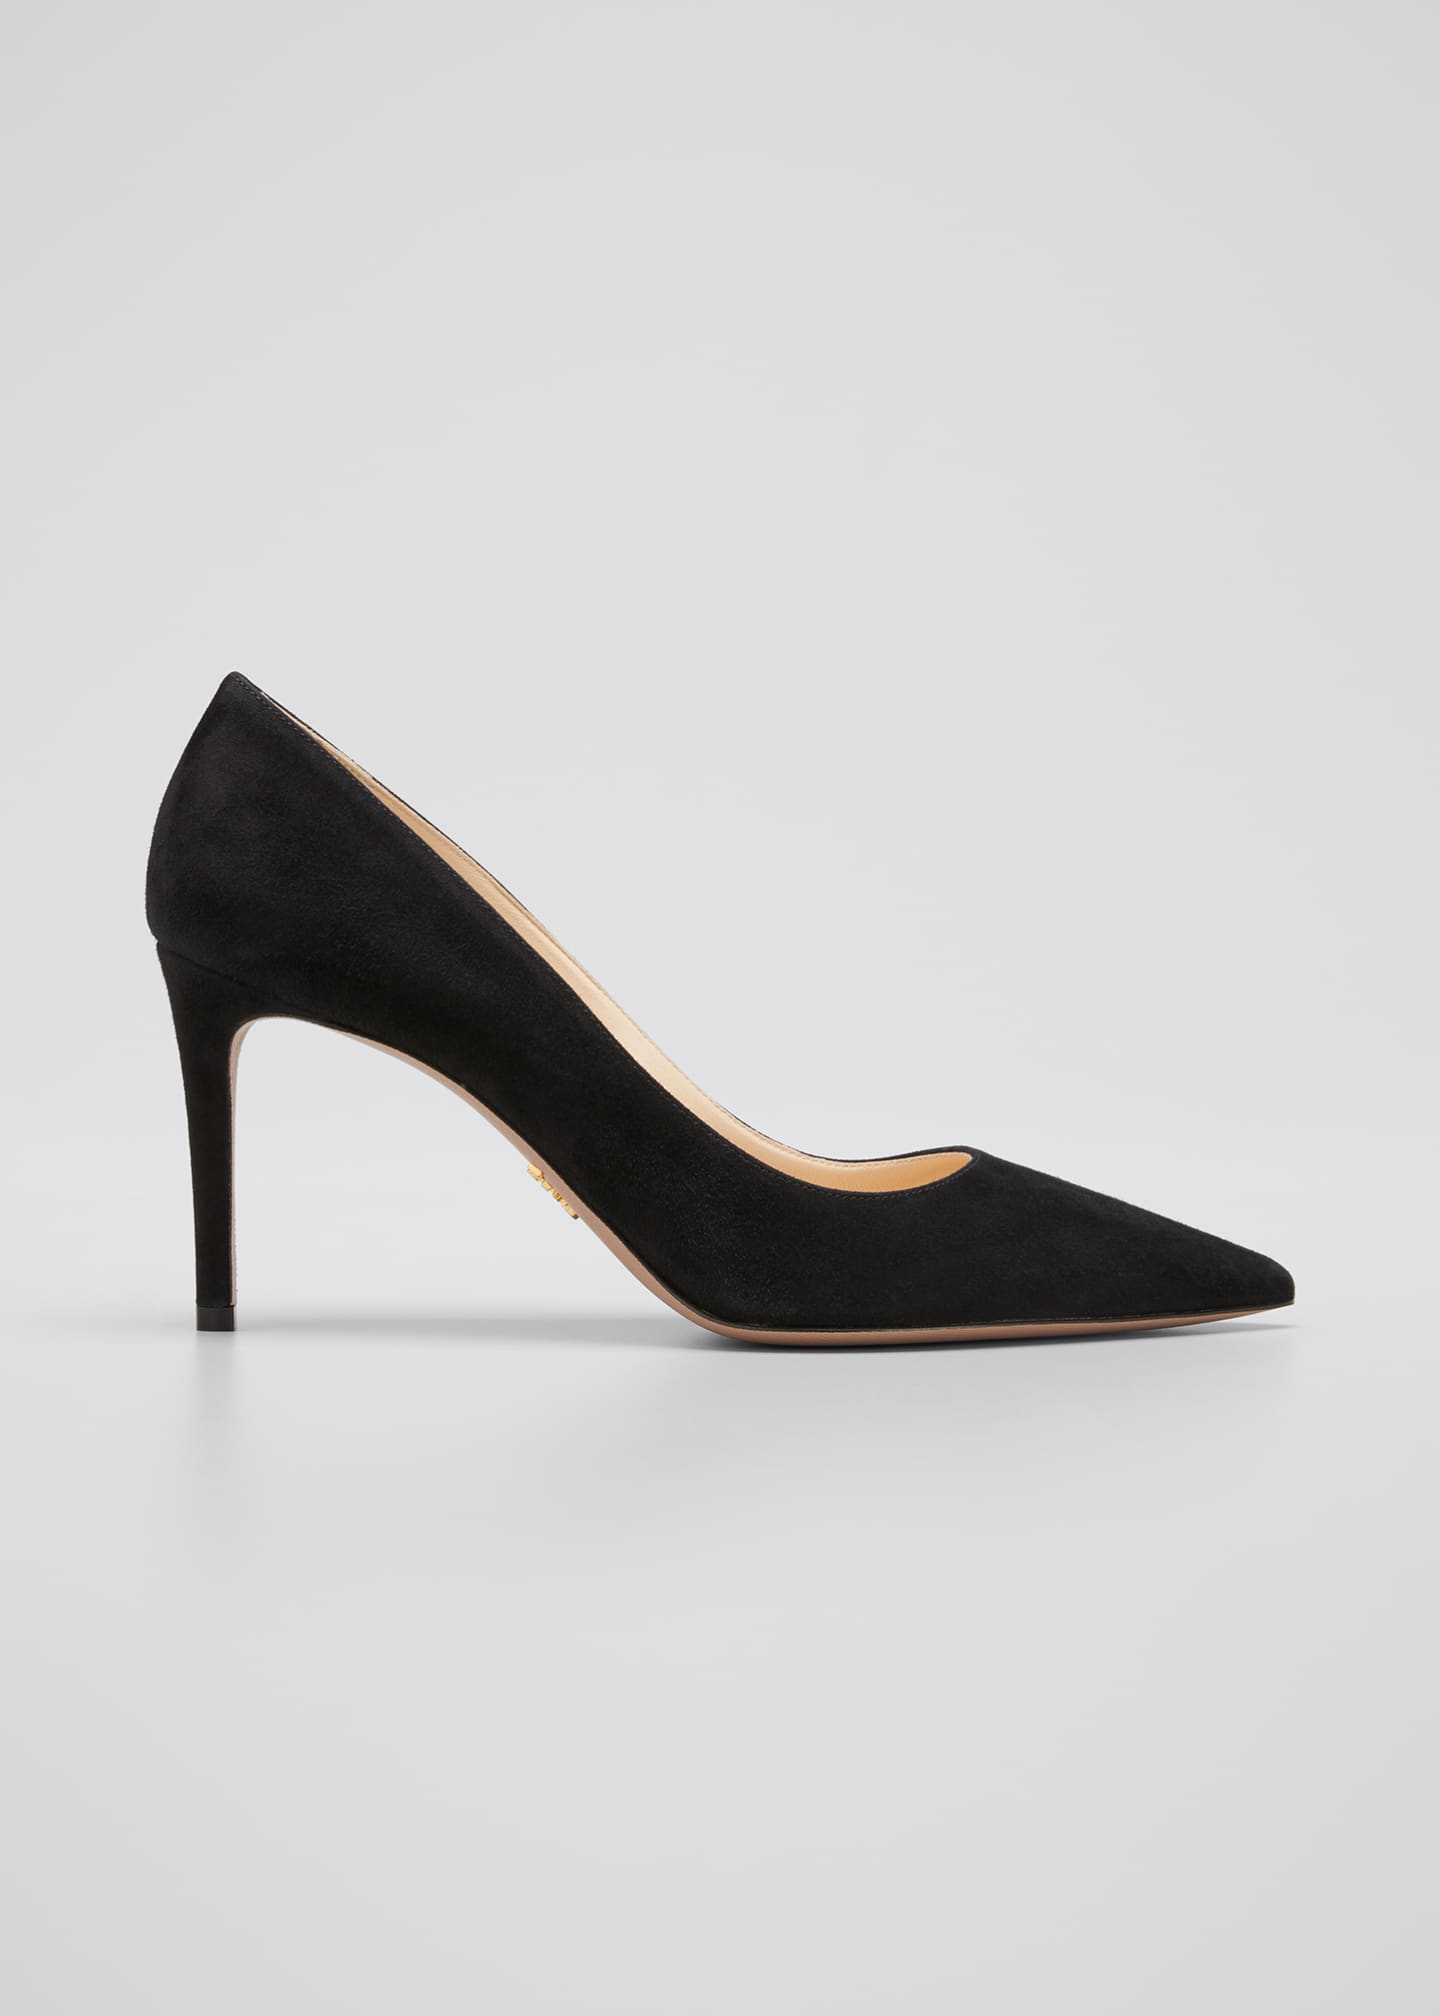 Suede Stiletto 85mm Pumps